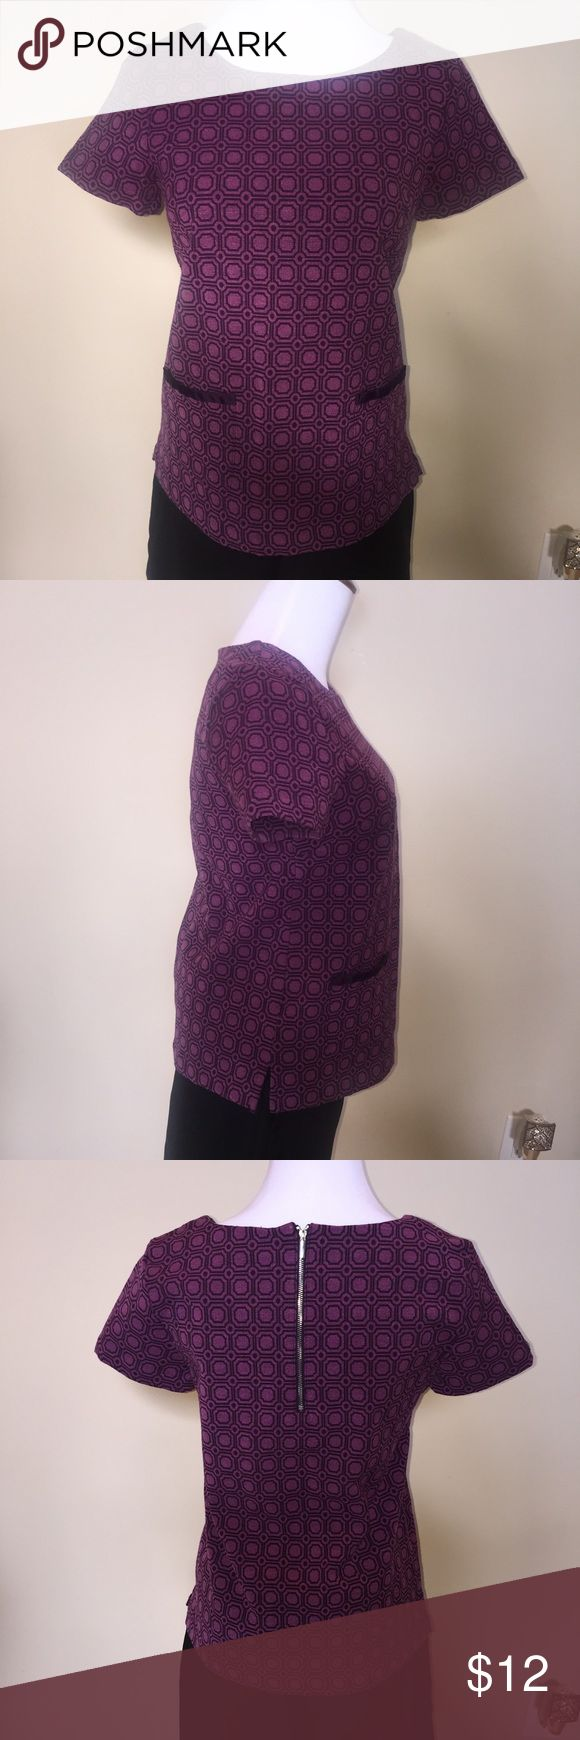 Short sleeve geometric pattern top Structured, stretchable short sleeve top. Purple with geometric pattern in front/back. Two small pockets on front and silver zipper on back. Nice summer shirt for the office. Size XS. New York & Company Tops